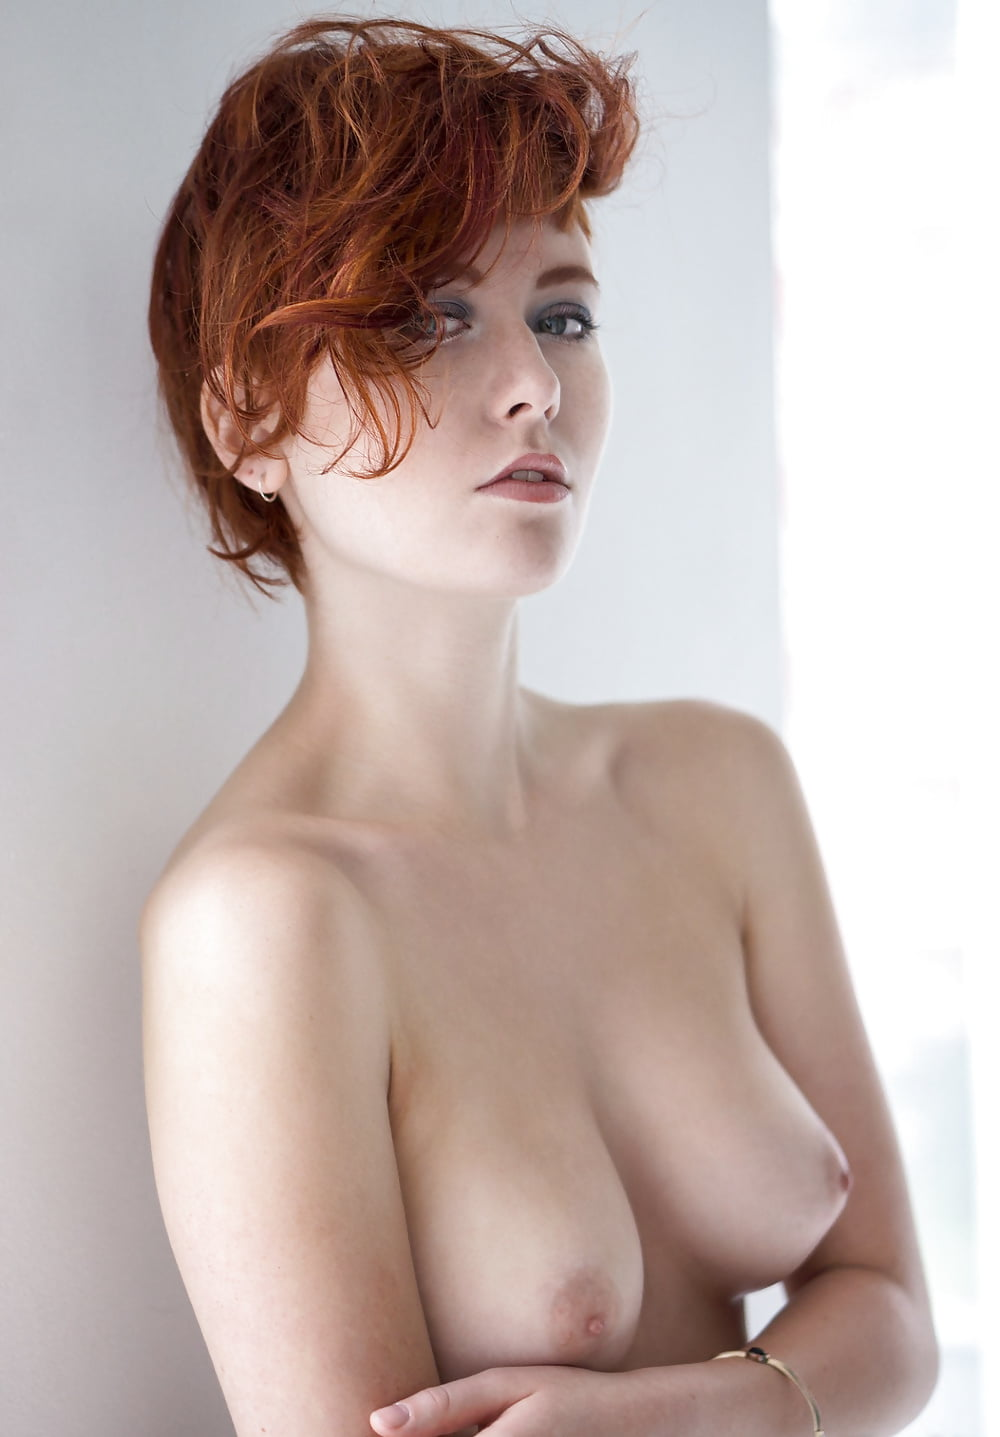 nude-gingers-with-short-hair-christmas-twins